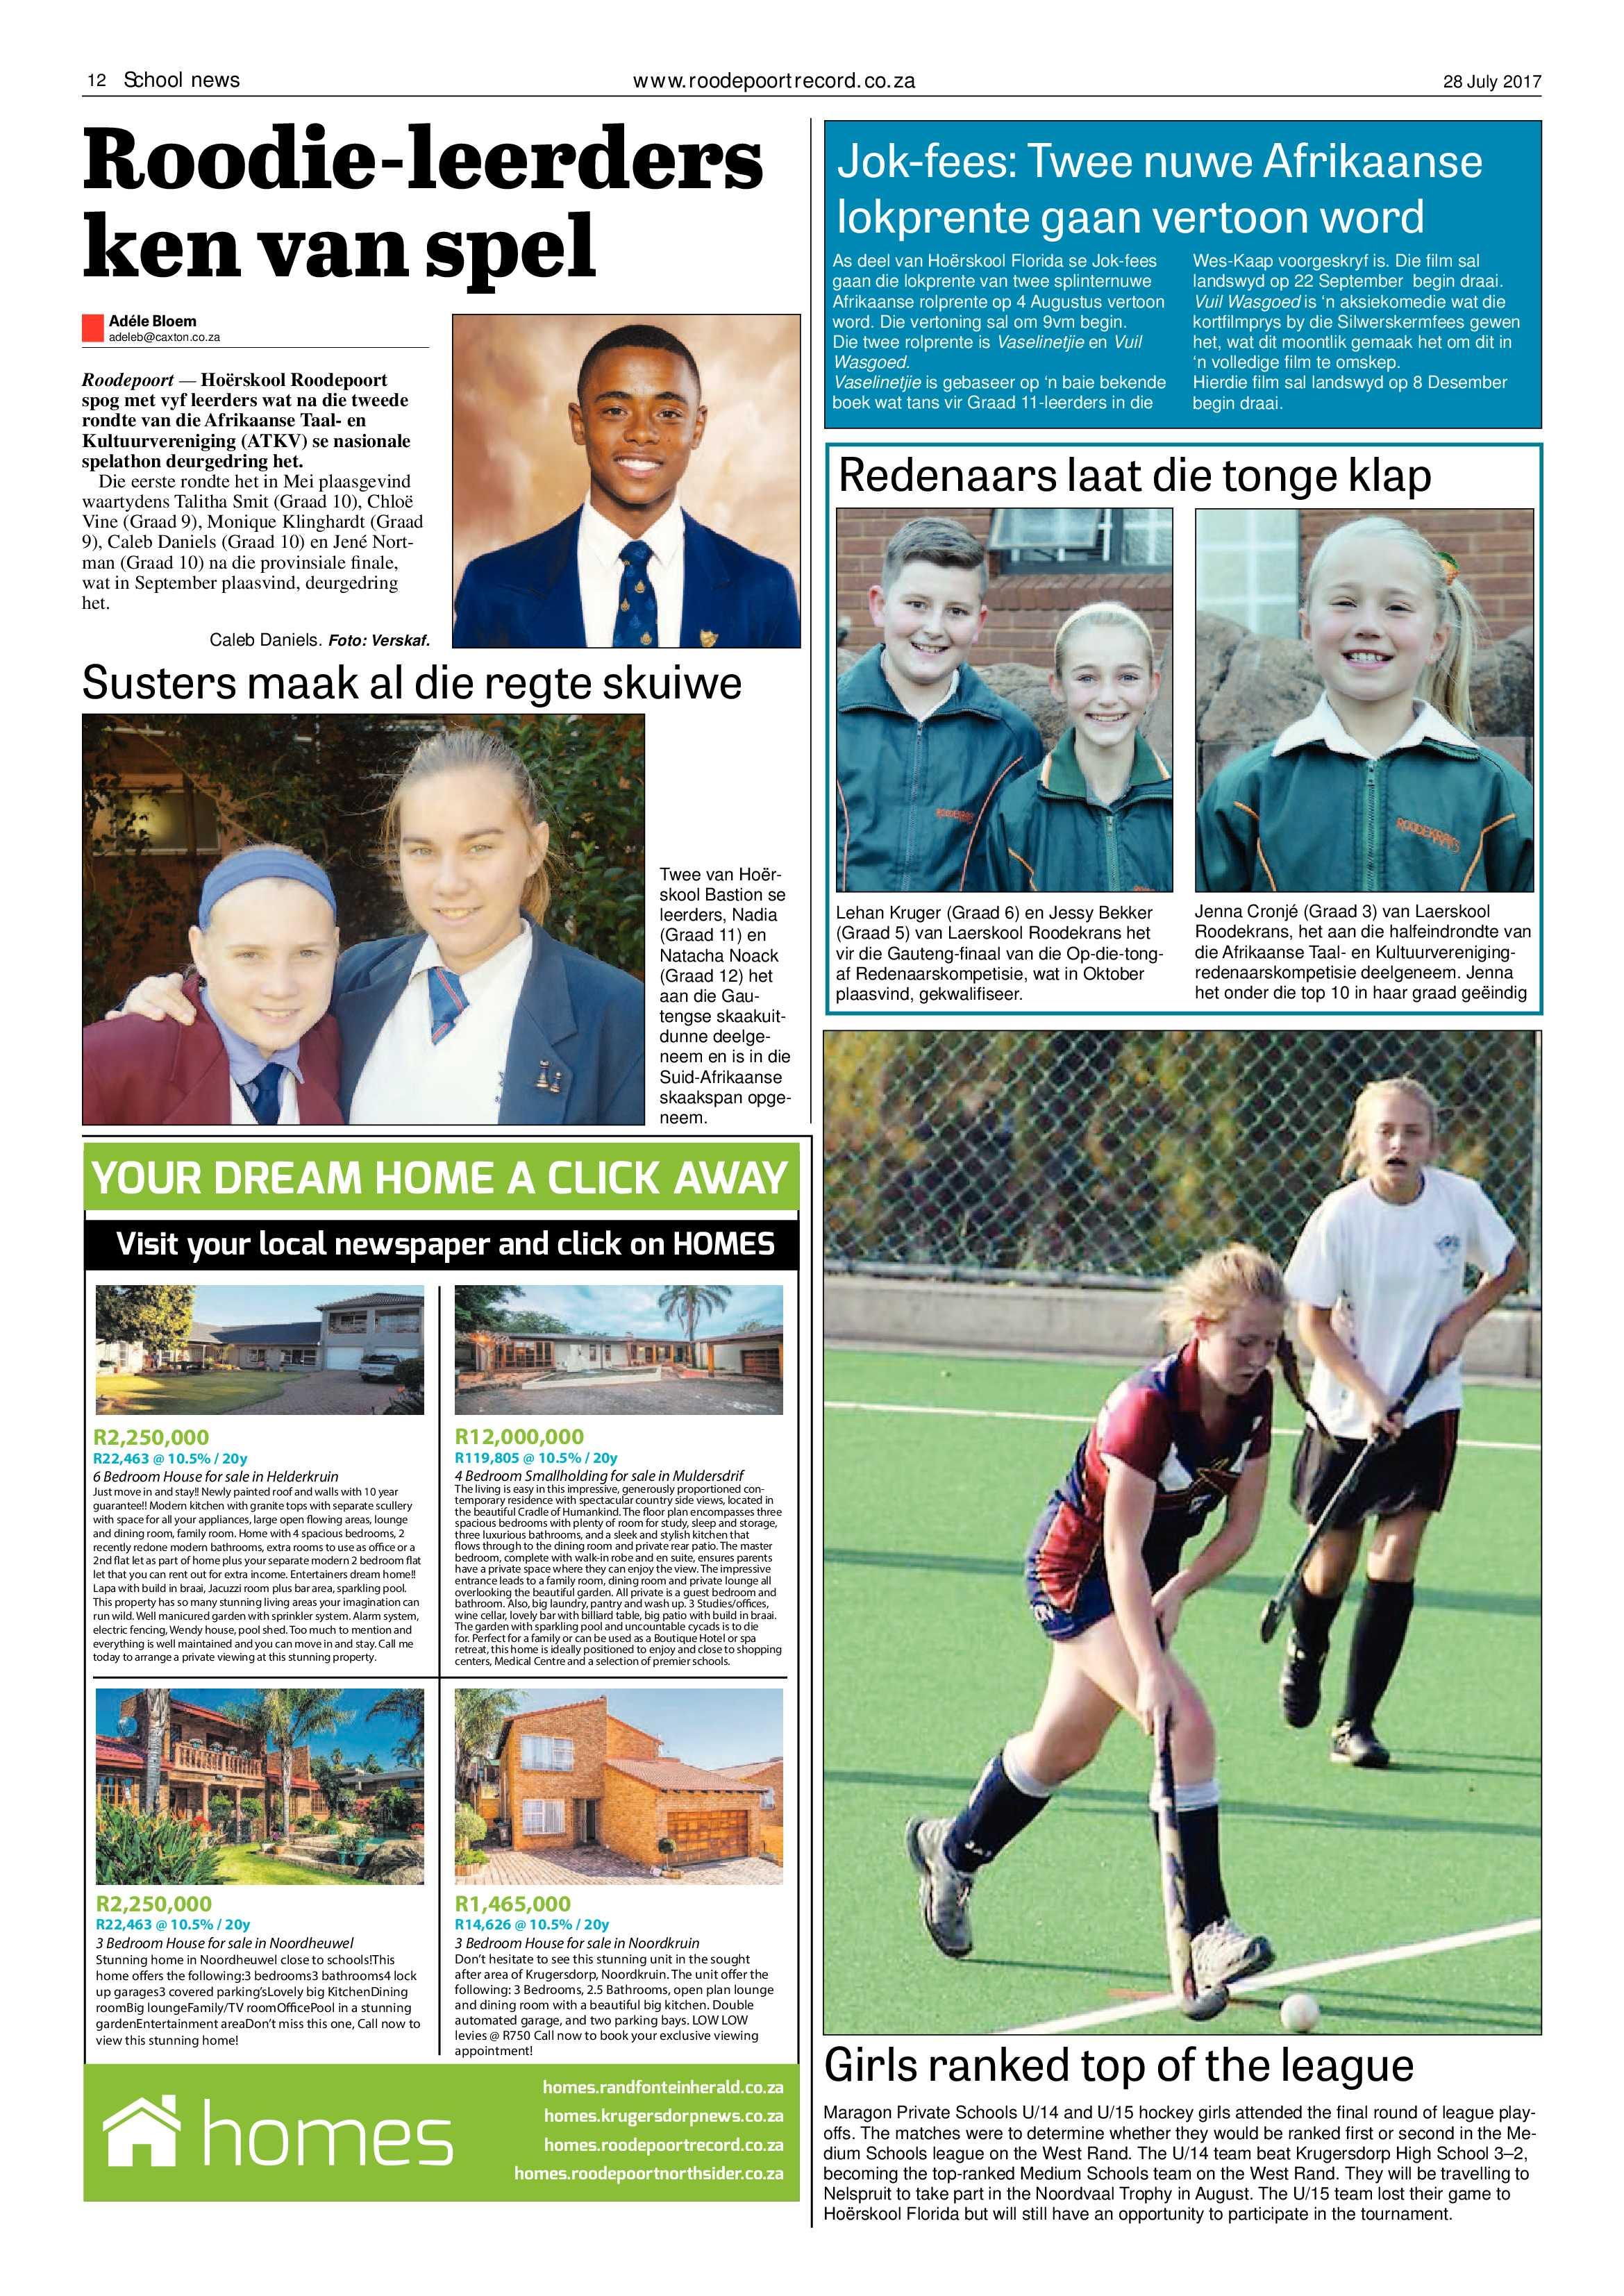 roodepoort-record-28-july-2017-epapers-page-12